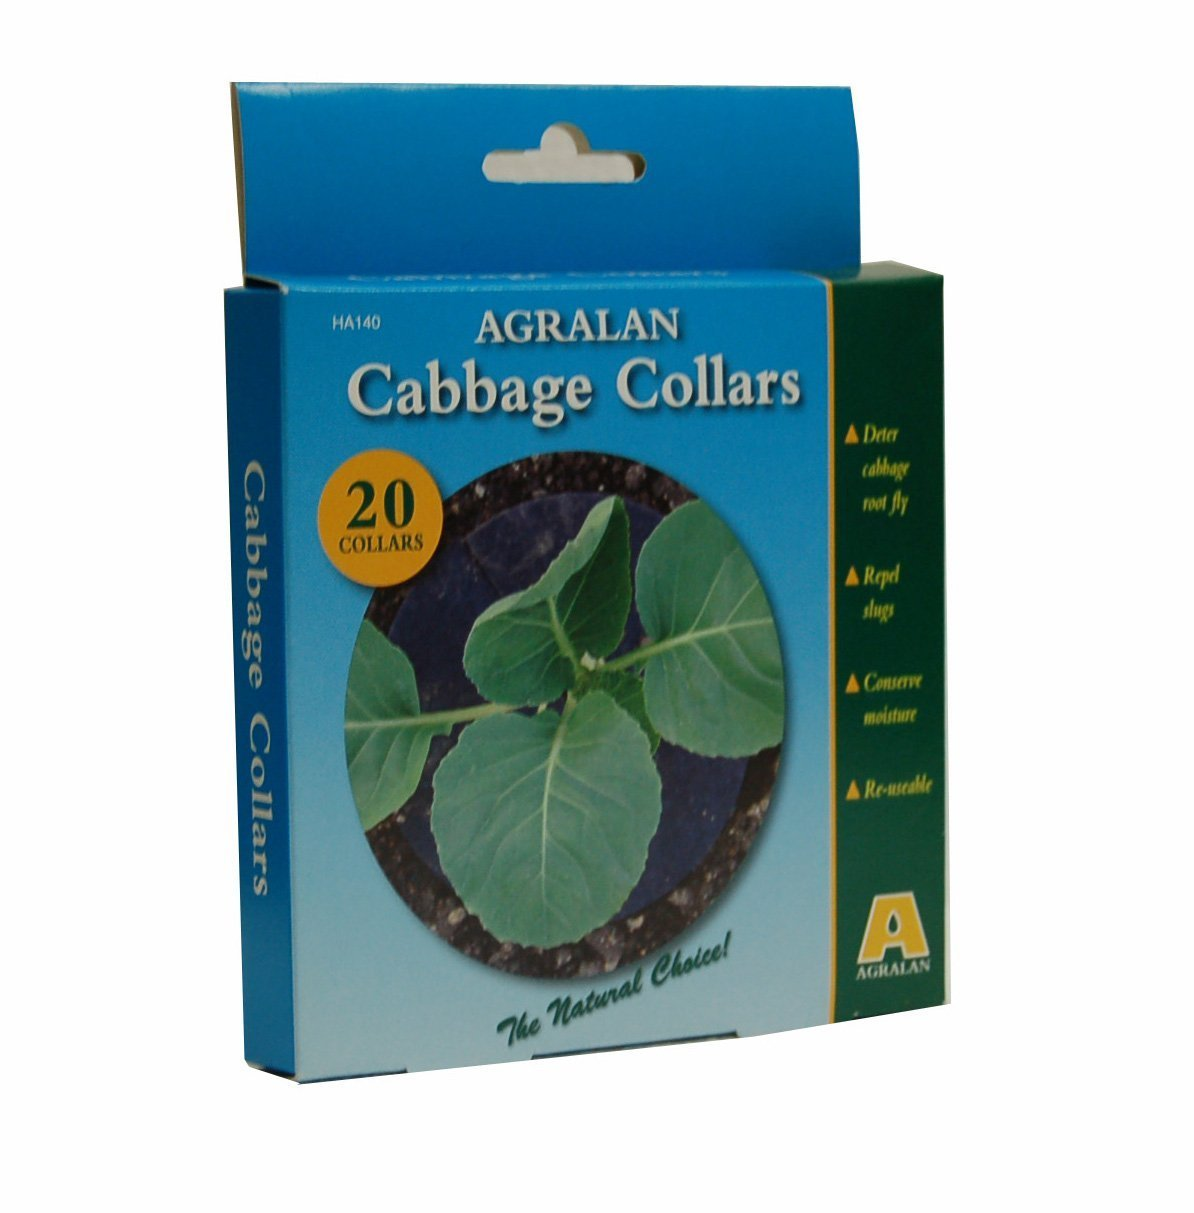 Agralan M140 Cabbage Collar (Pack of 20) Agralan Ltd